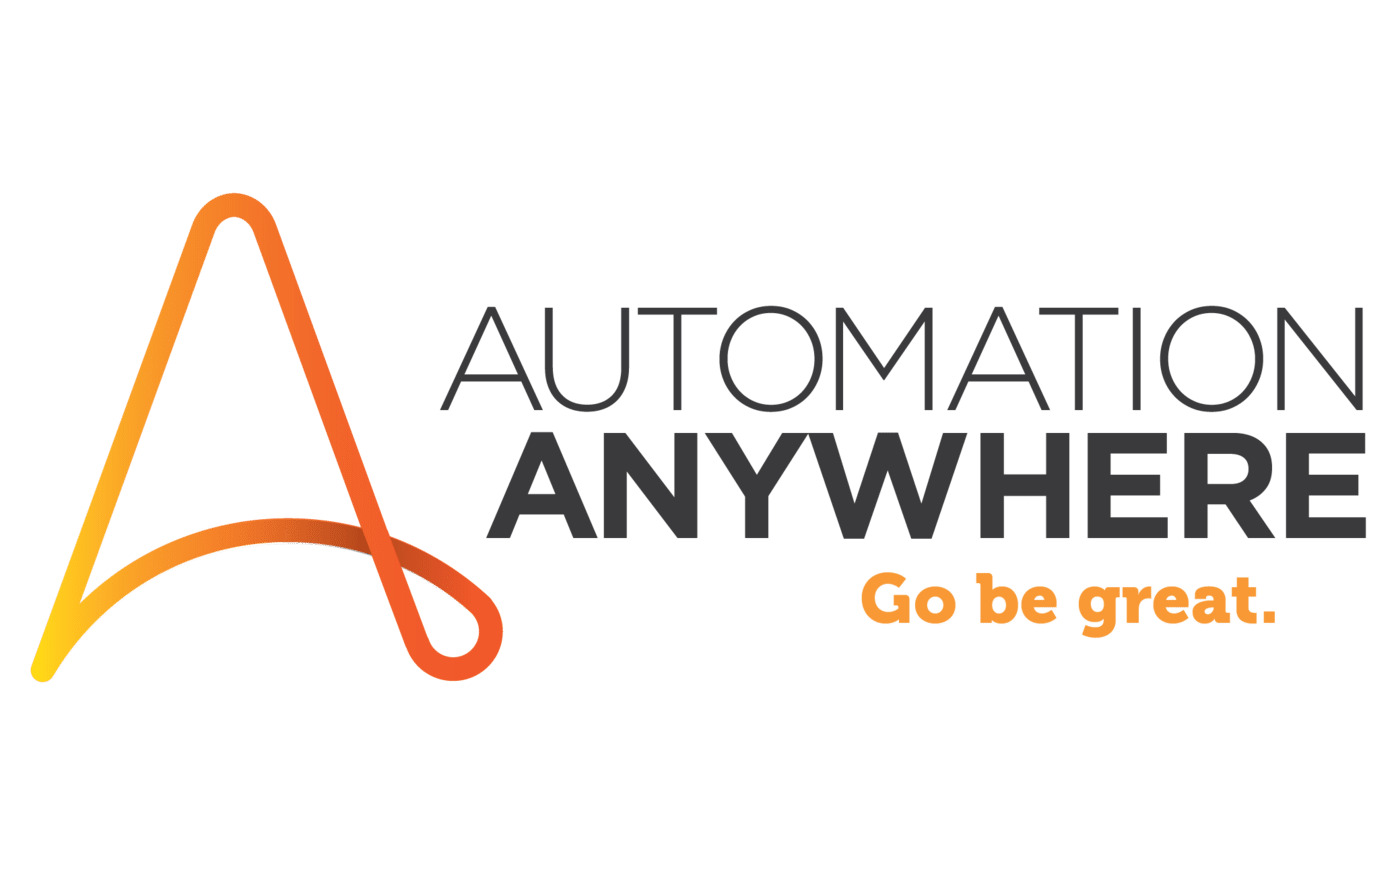 automation_anywhere_logo_with_go_be_great